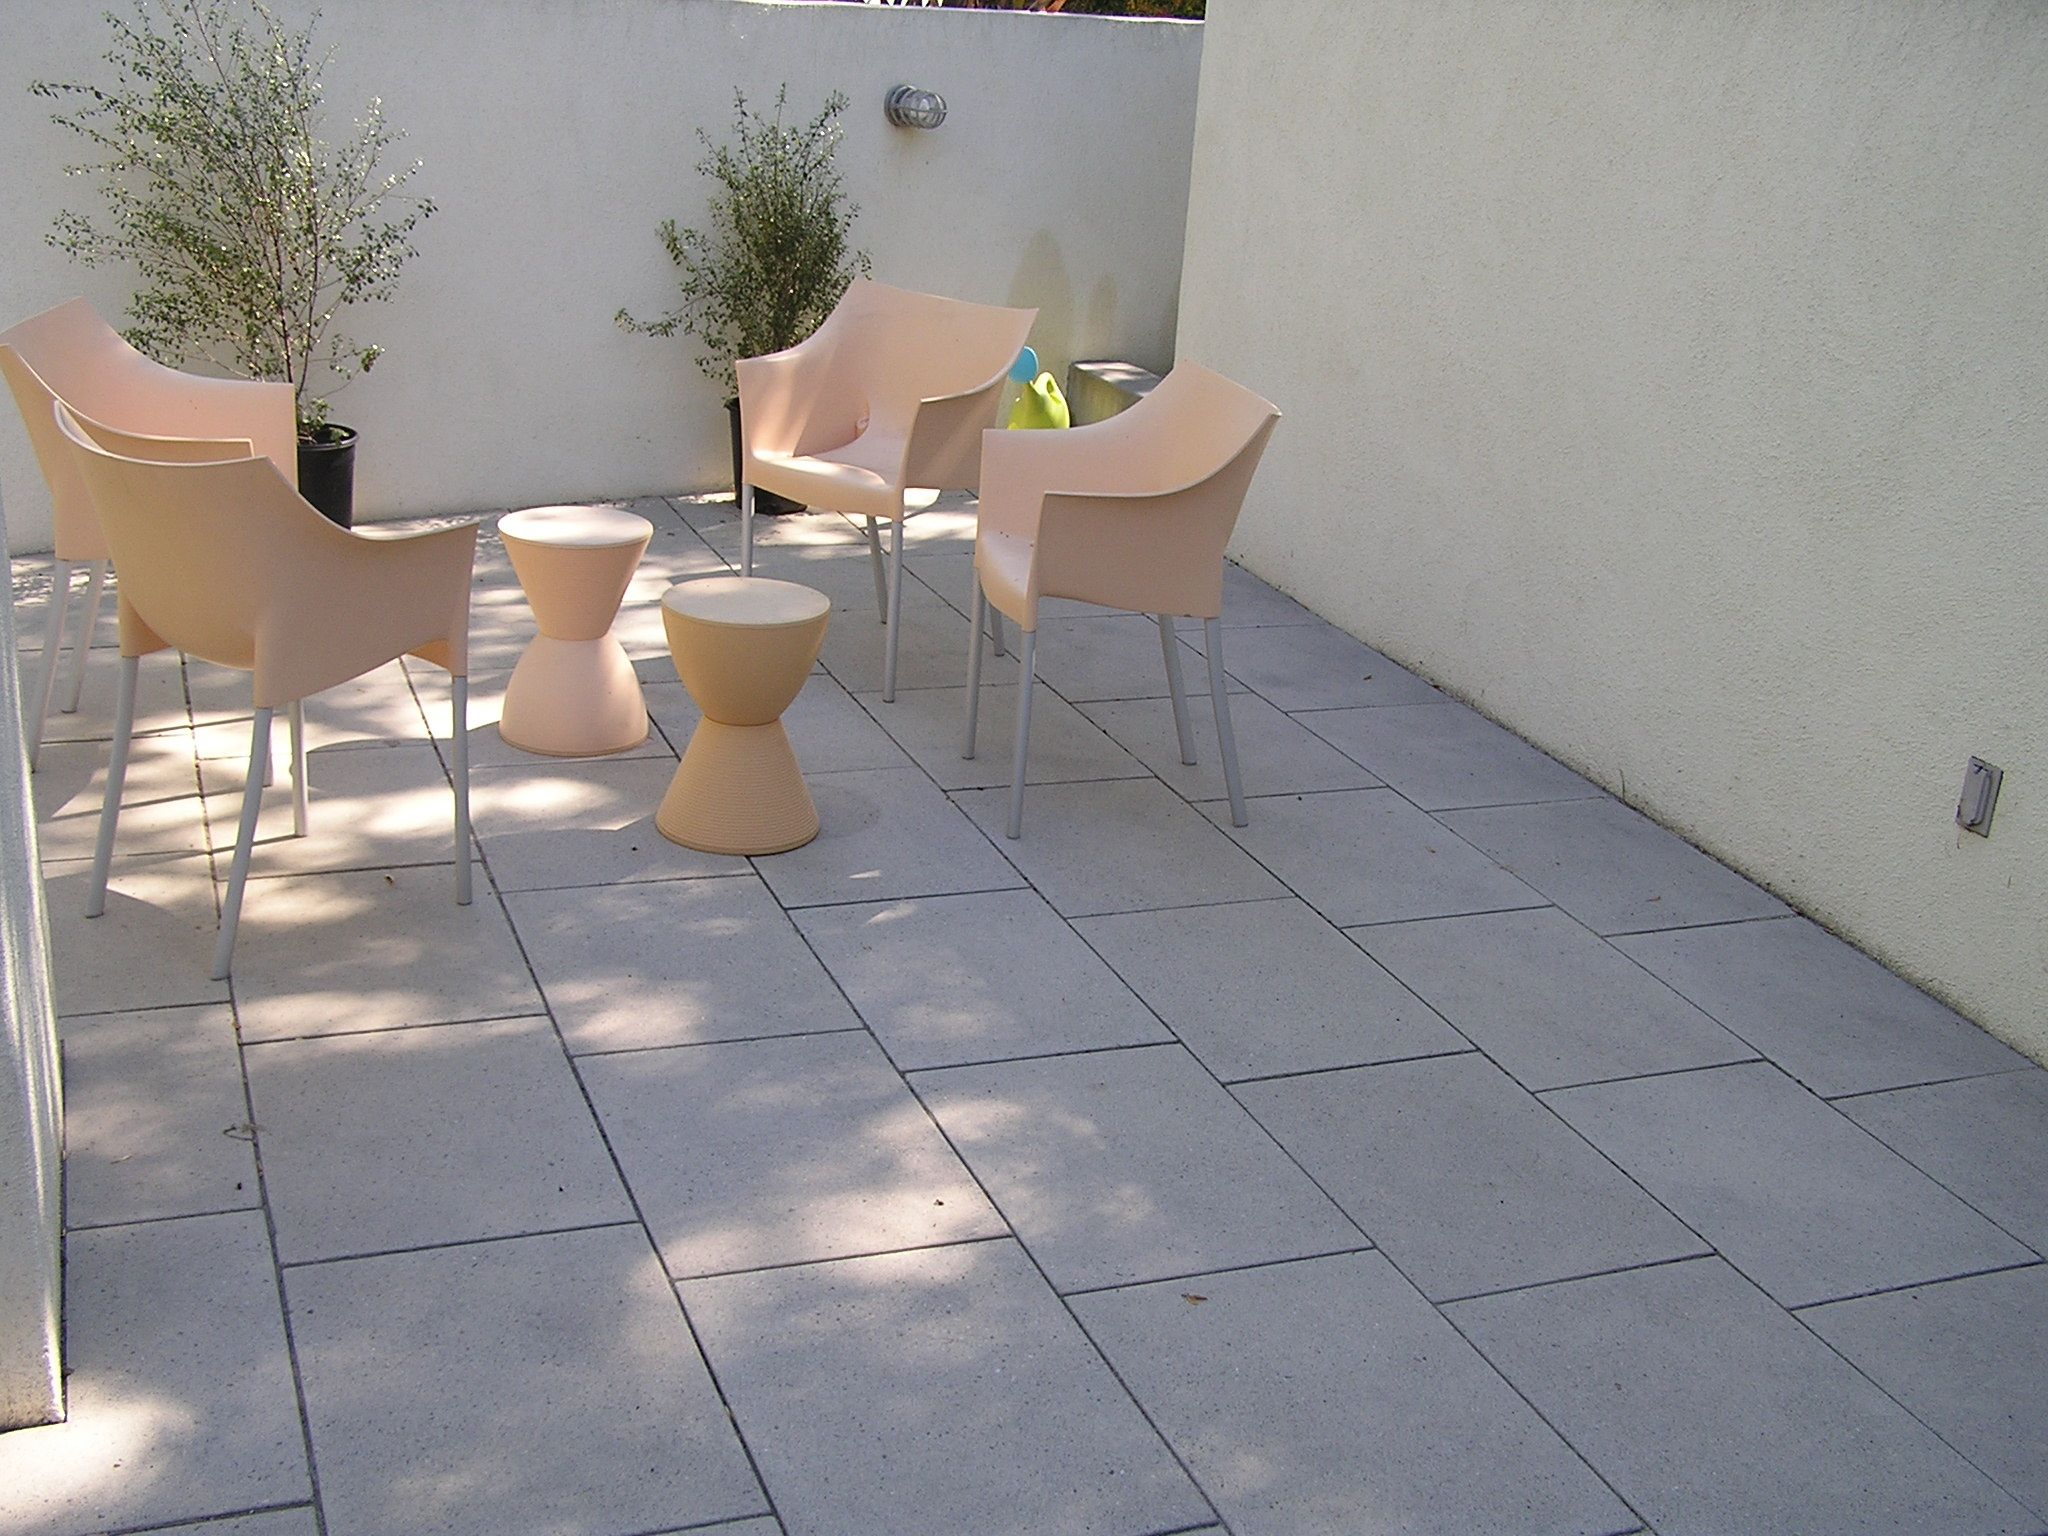 Concrete Design Ideas stamped tile with border We Have Some Patio Ideas On A Budget You Can Do To Keep The Money Spent